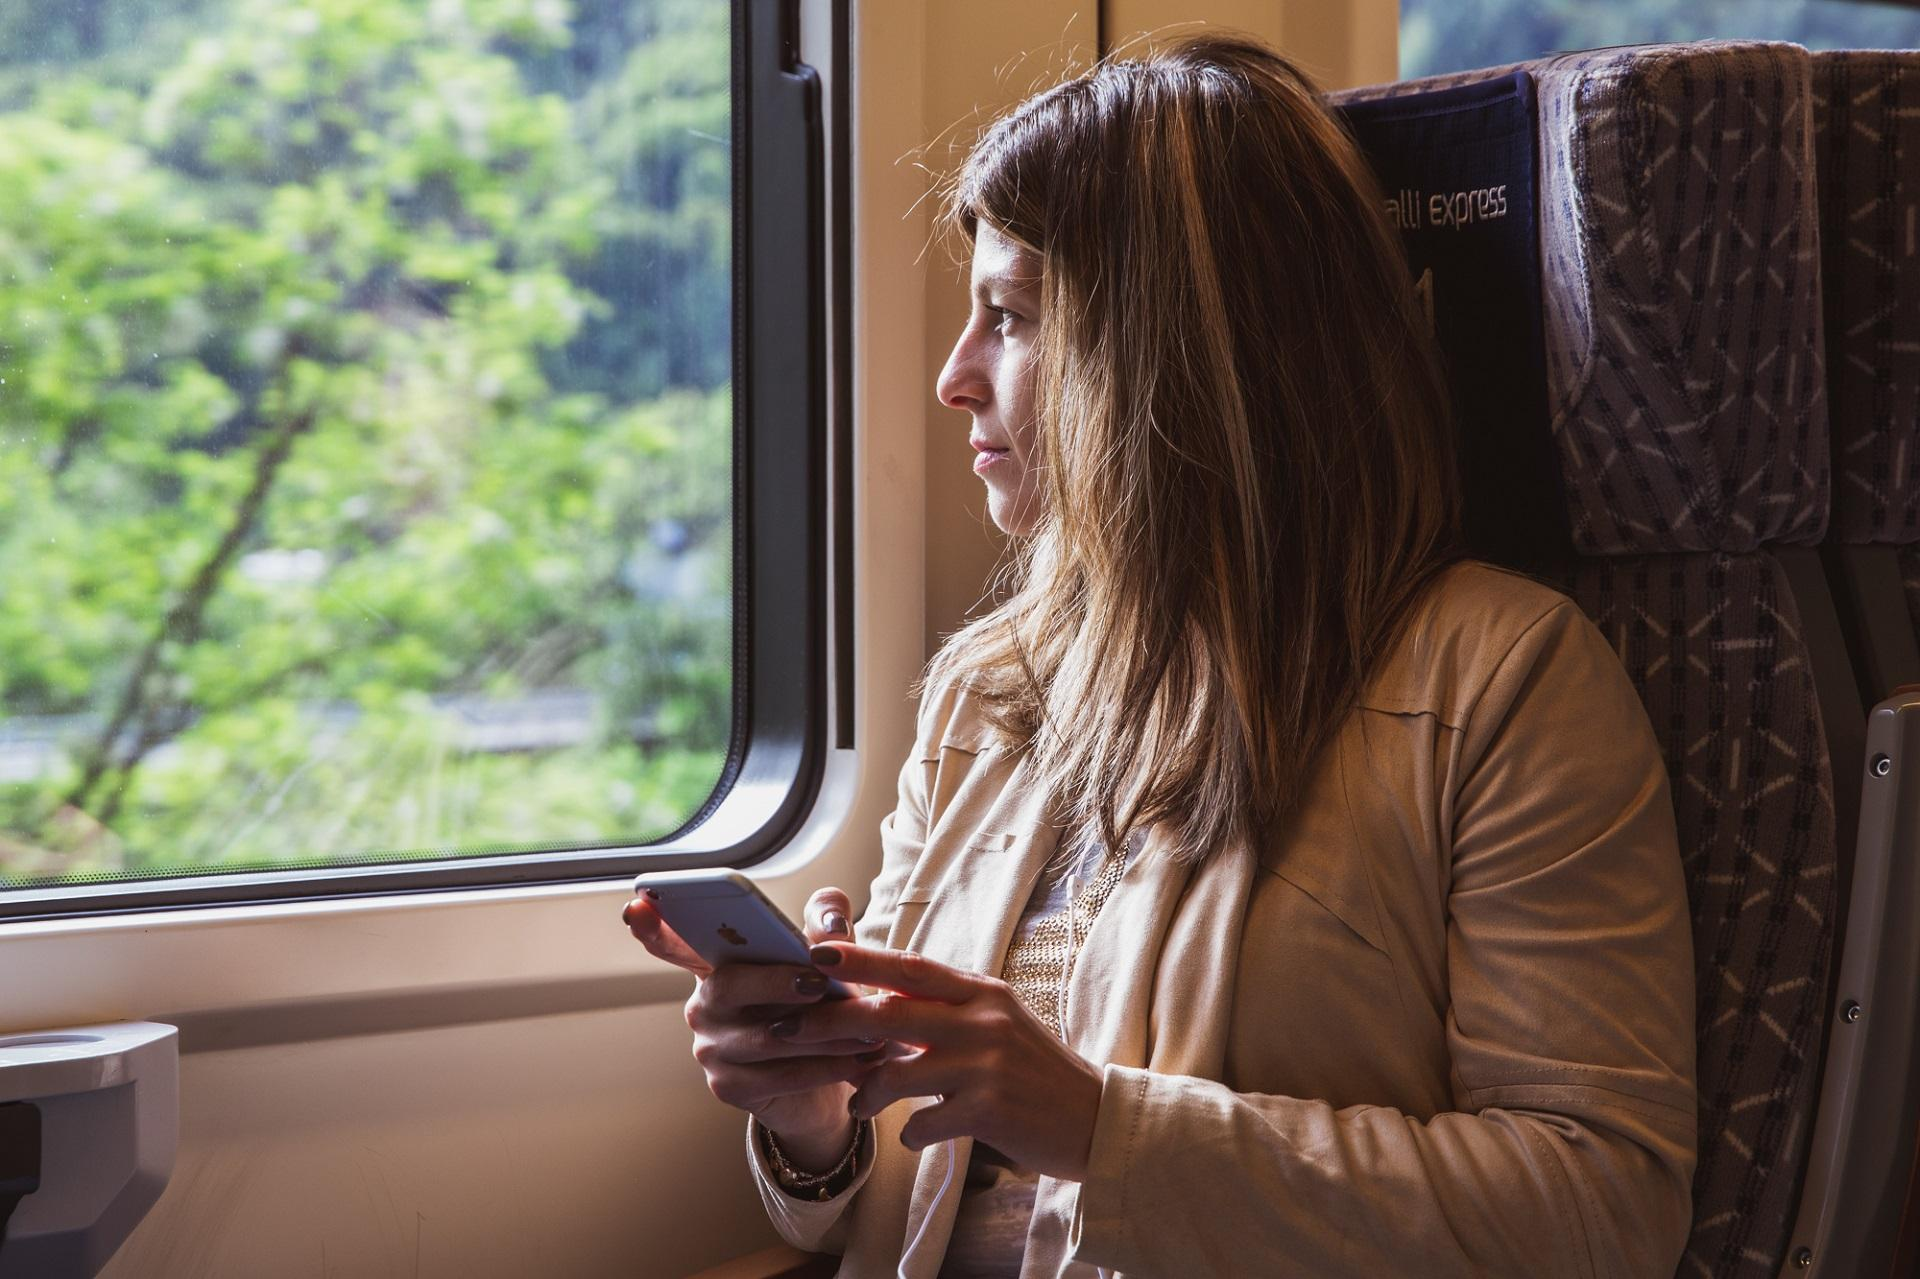 Free audioguides on international trains